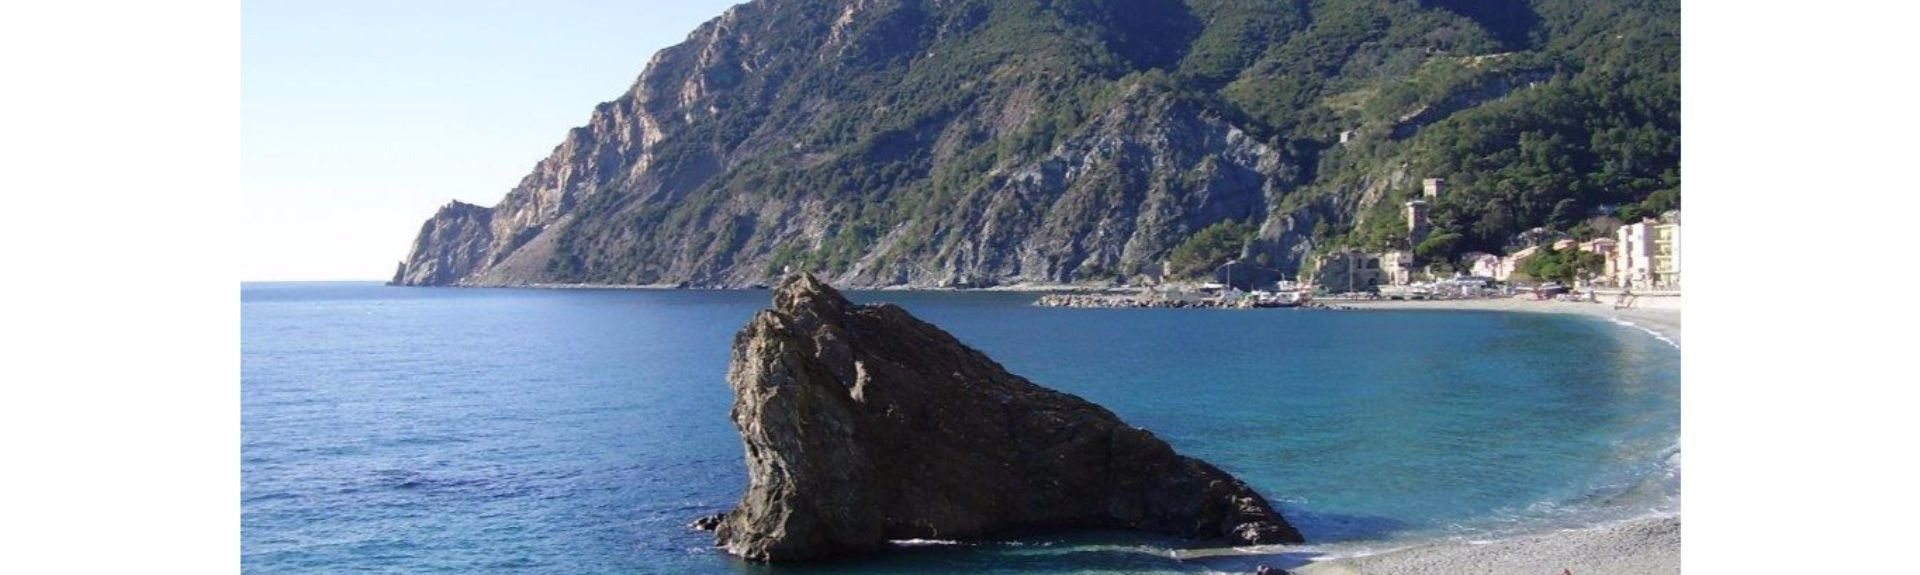 Follo, Ligurie, Italie